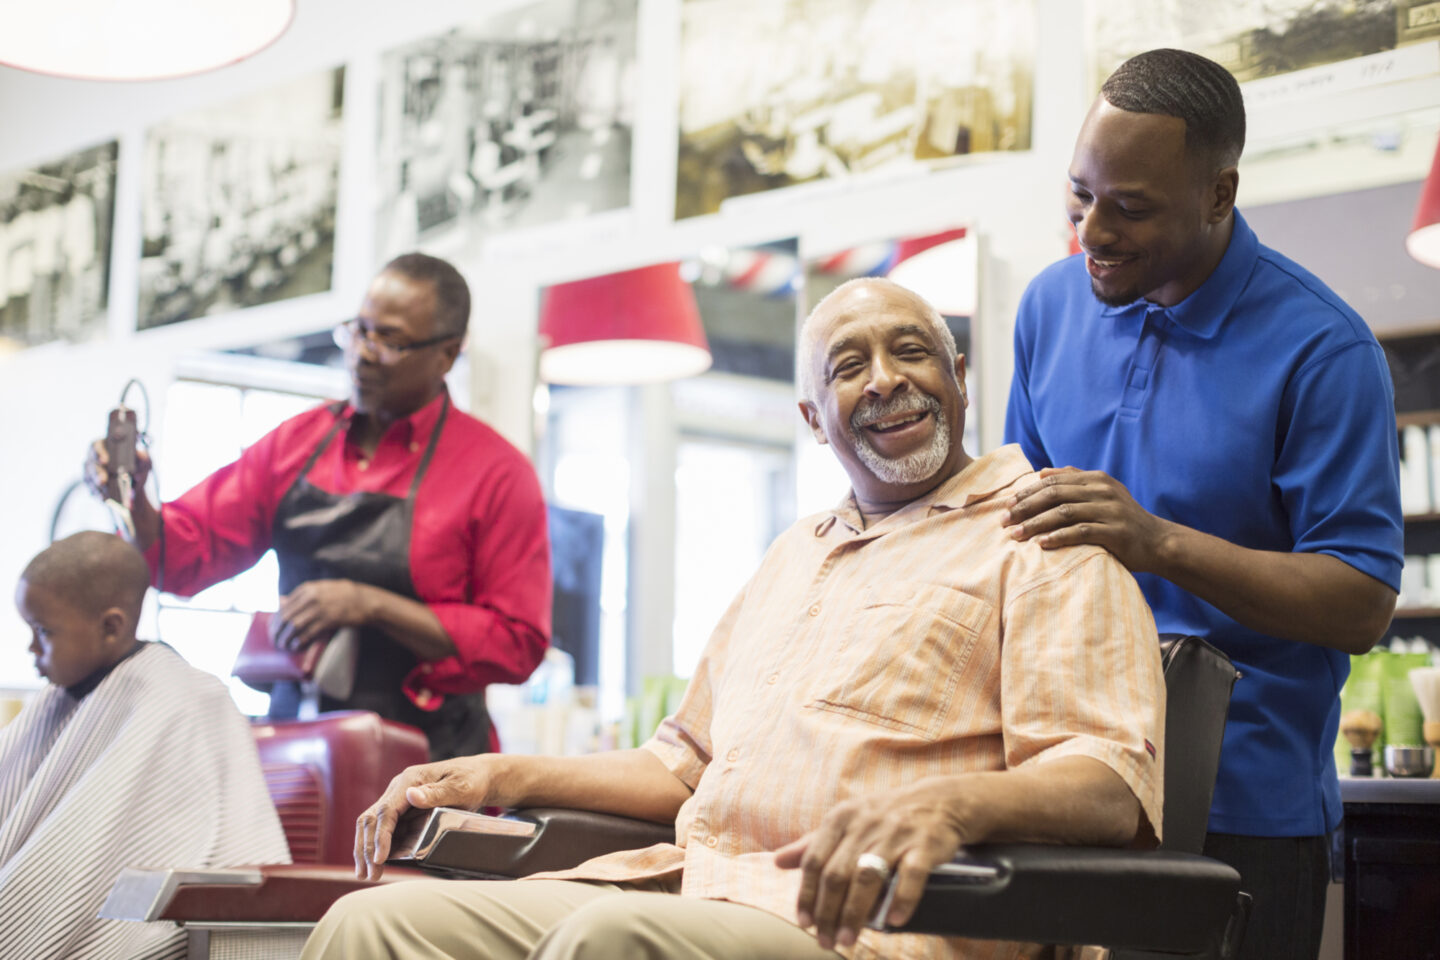 Men getting haircuts and chatting at a barber shop